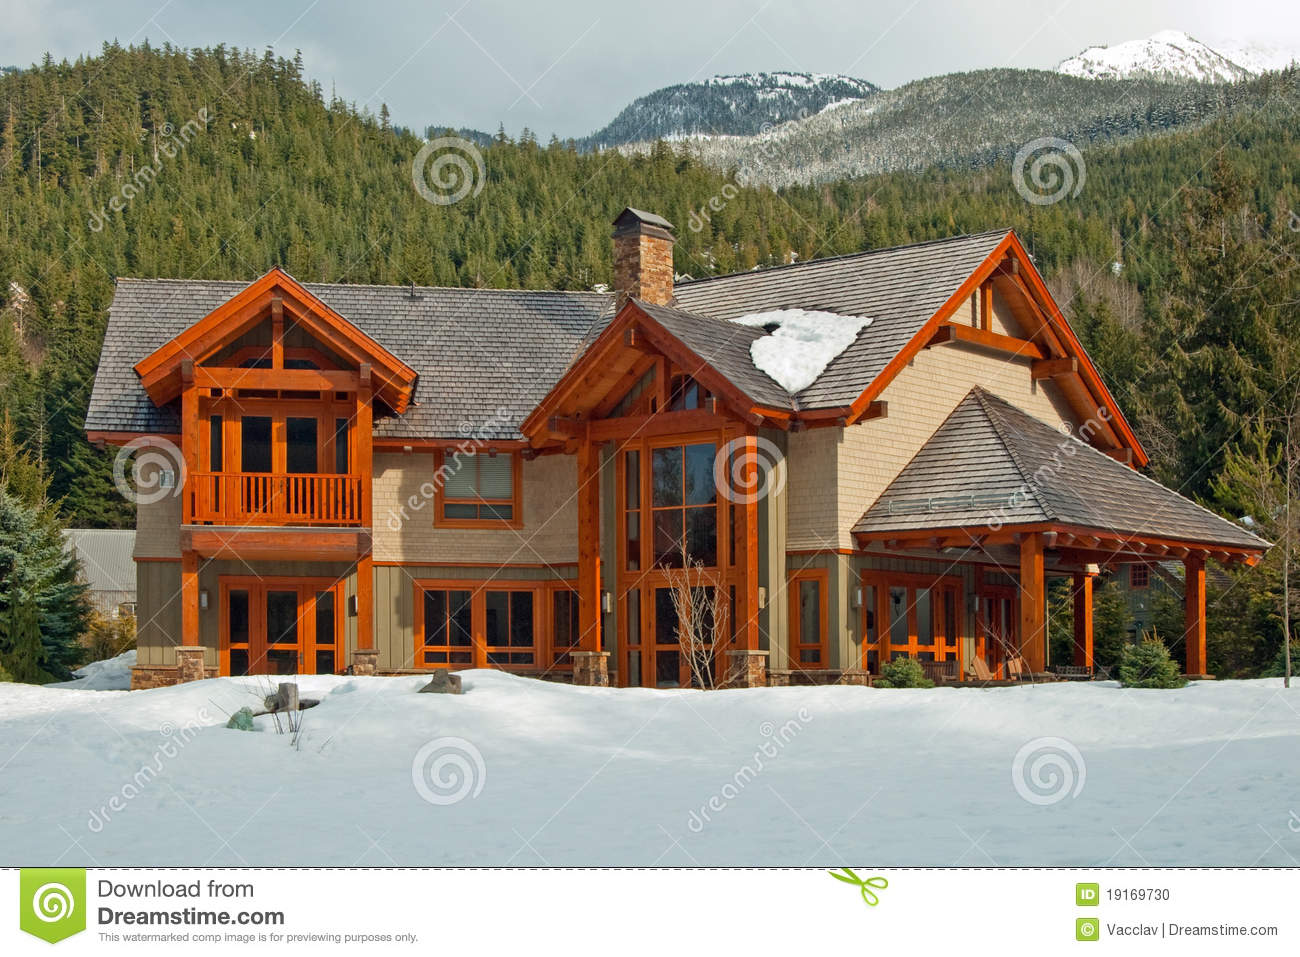 New american wooden dream home stock photo image 19169730 for Dream wooden house